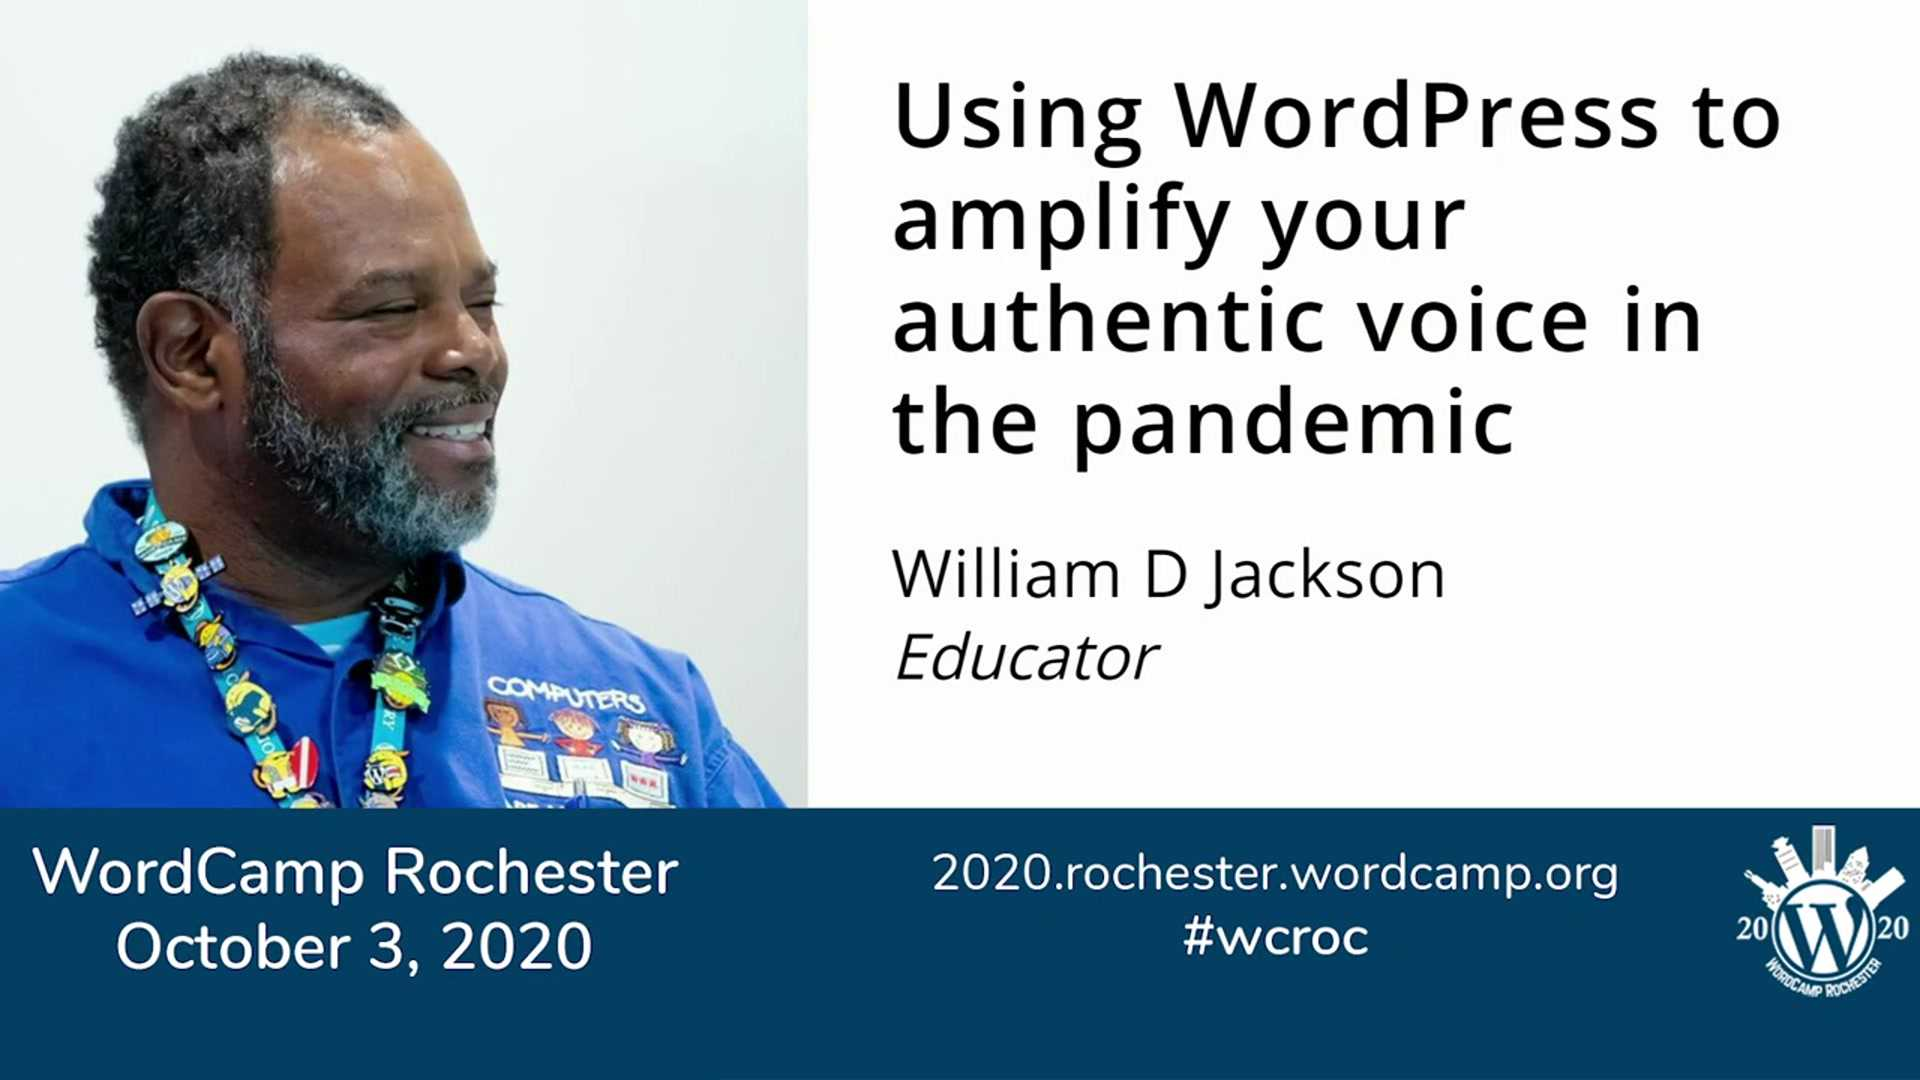 William D. Jackson: Use WordPress to Amplify Your Authentic Voice In The Pandemic